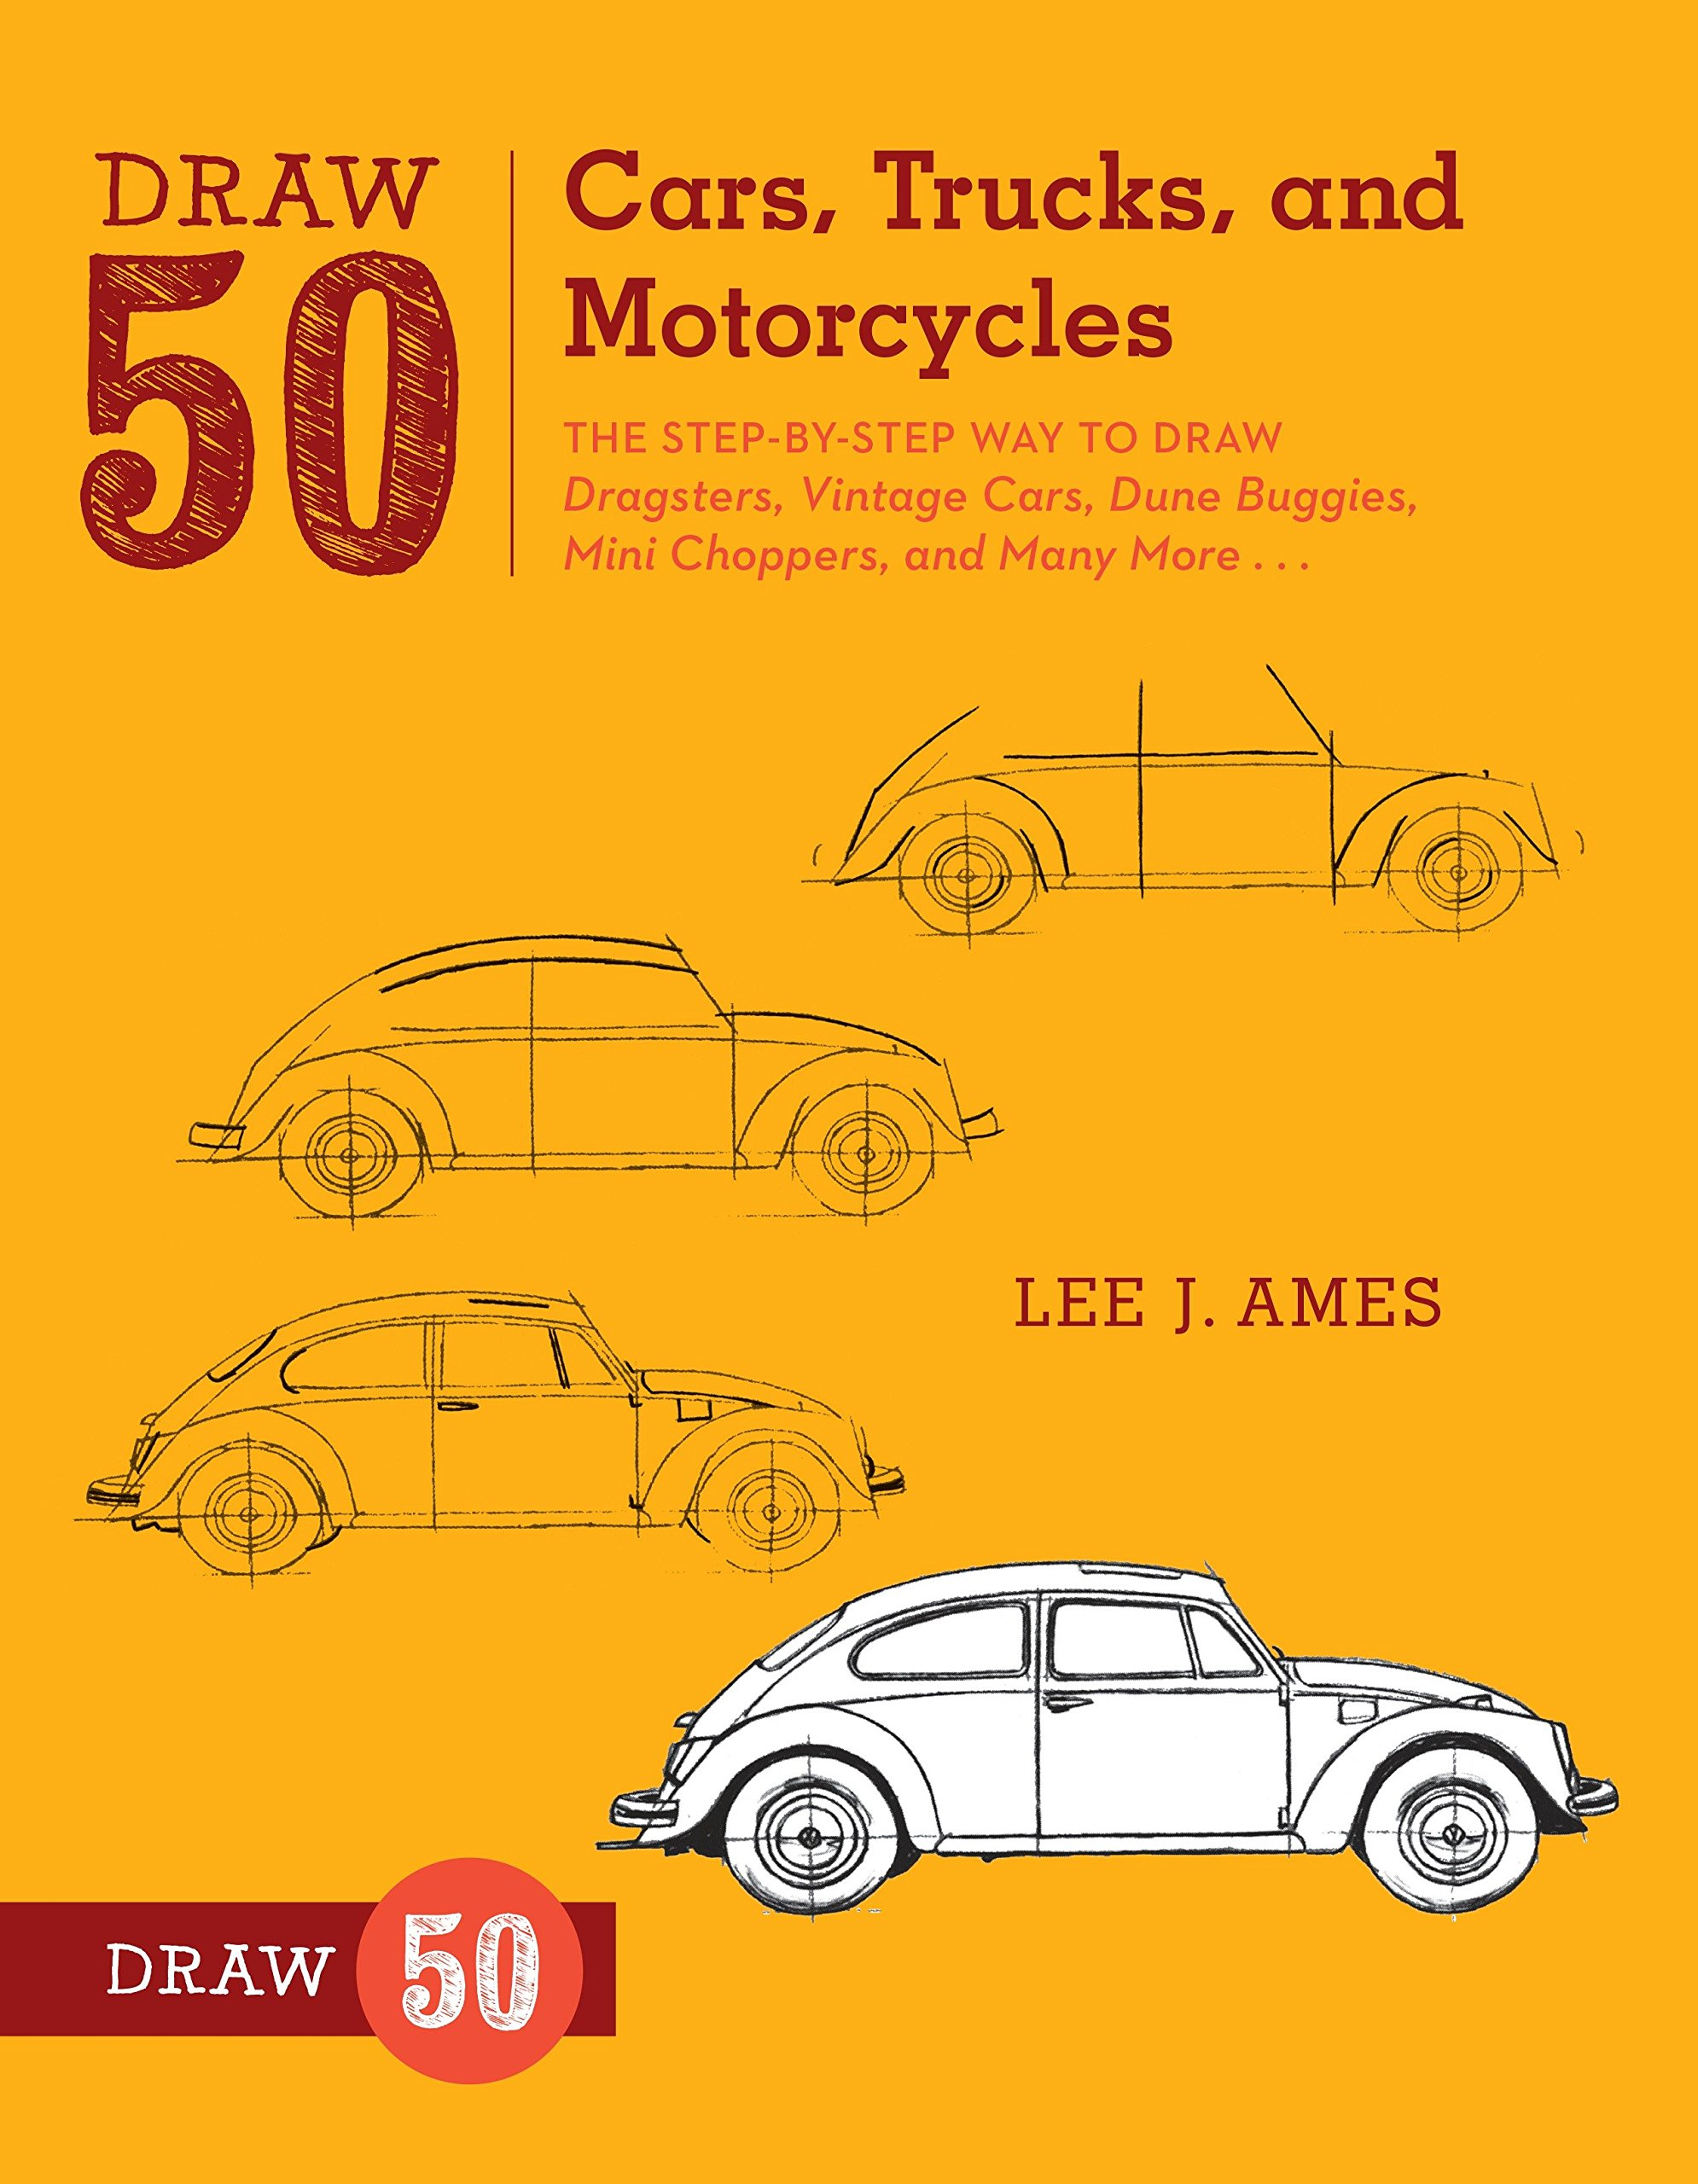 Draw 50 Cars, Trucks, and Motorcycles: The Step-by-Step Way to Draw Dragsters, Vintage Cars, Dune Buggies, Mini Choppers, and Many More... Paperback – May 8, 2012 Lee J. Ames Watson-Guptill 0823085767 Art - Drawing